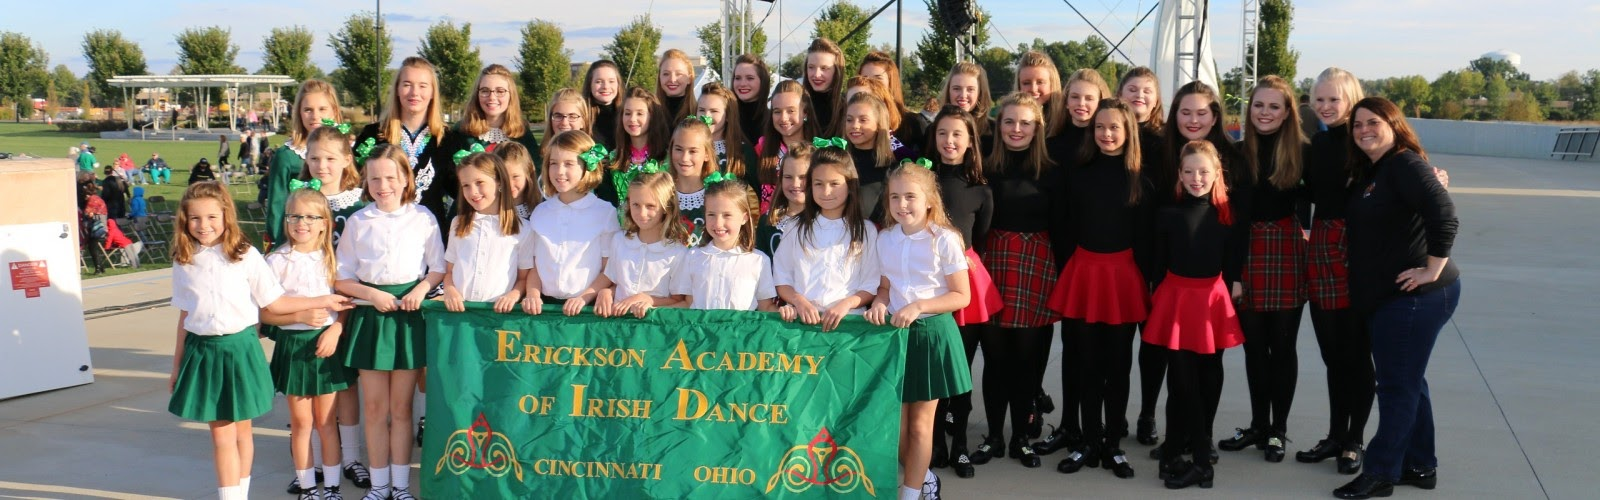 Young dancers from the academy pose with their flag